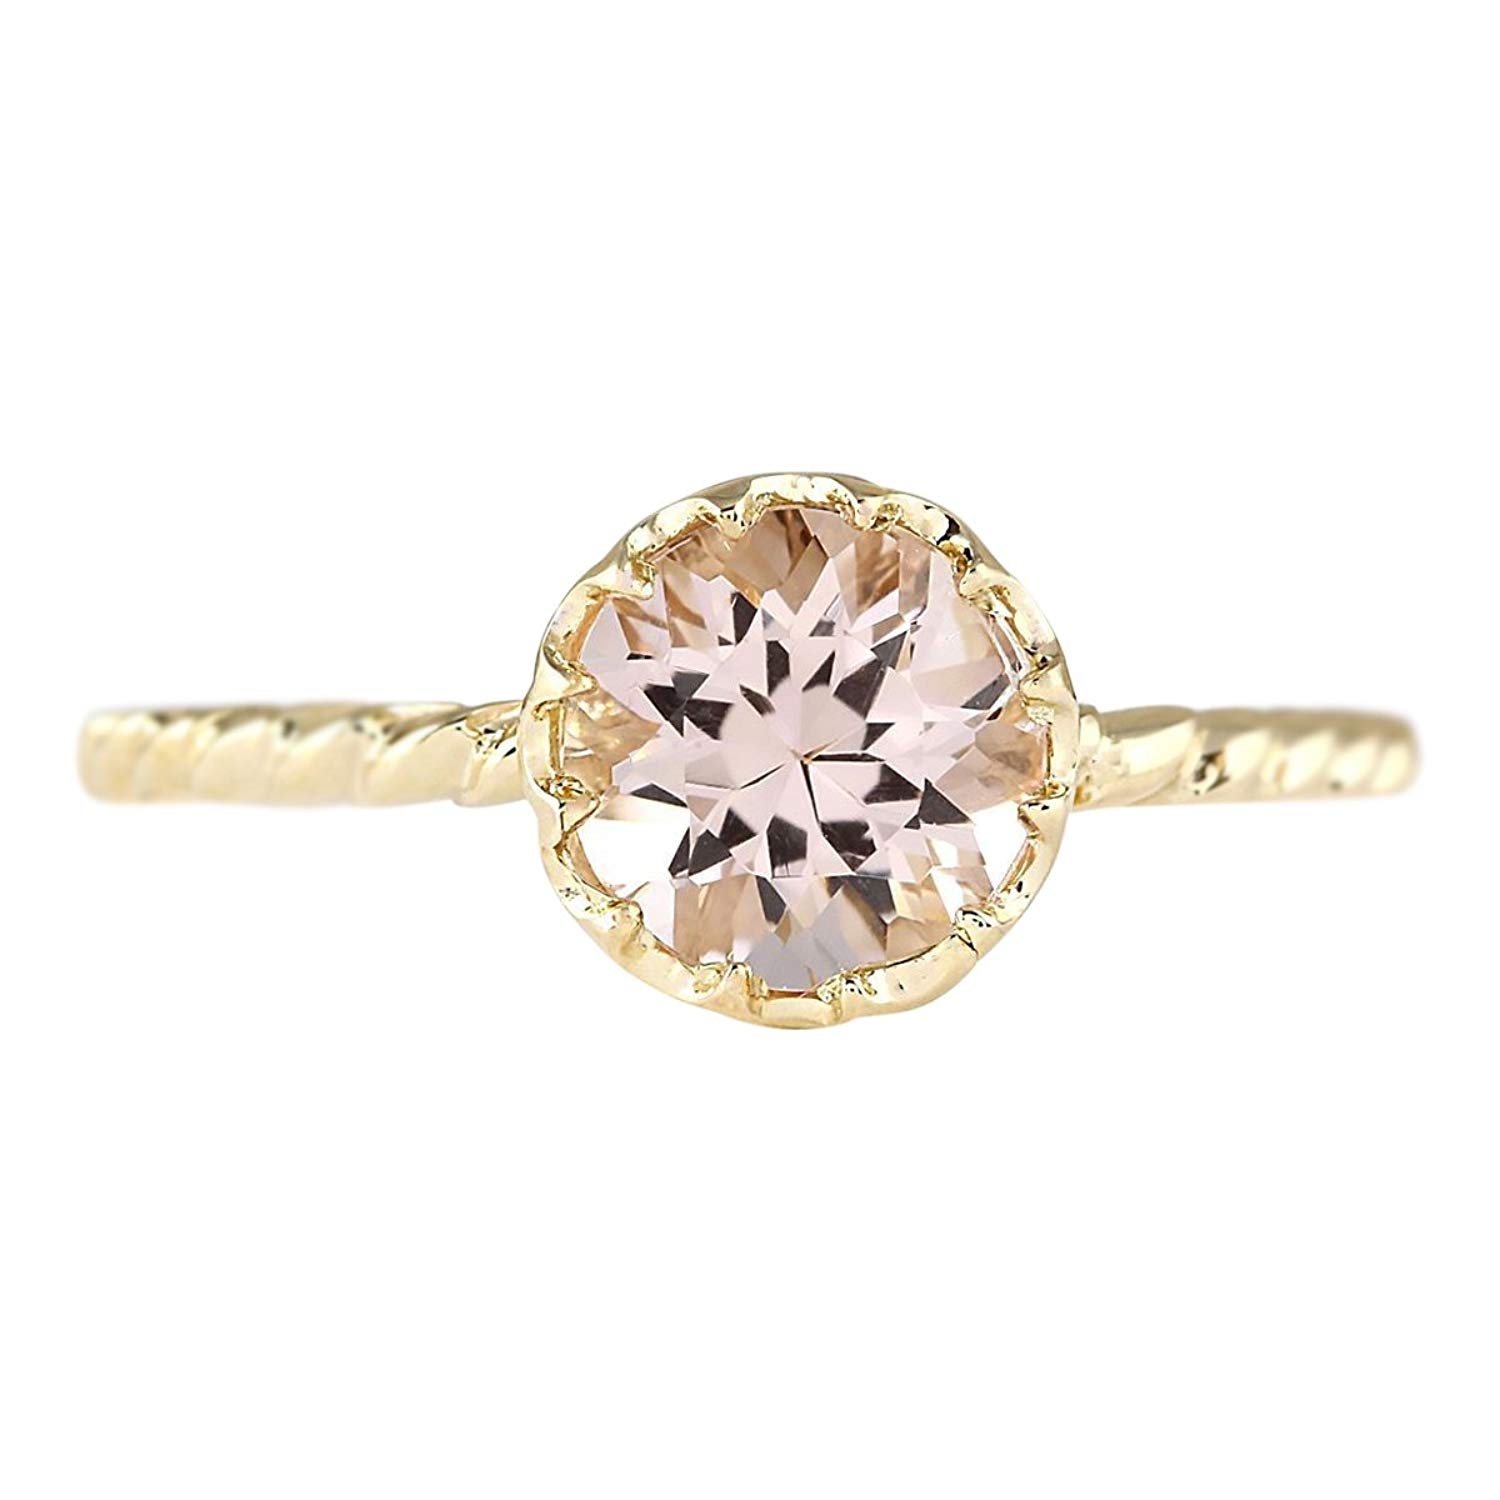 Get Quotations 1 2 Carat Natural Pink Morganite 14k Yellow Gold Solitaire Promise Ring For Women Exclusively Handcrafted In